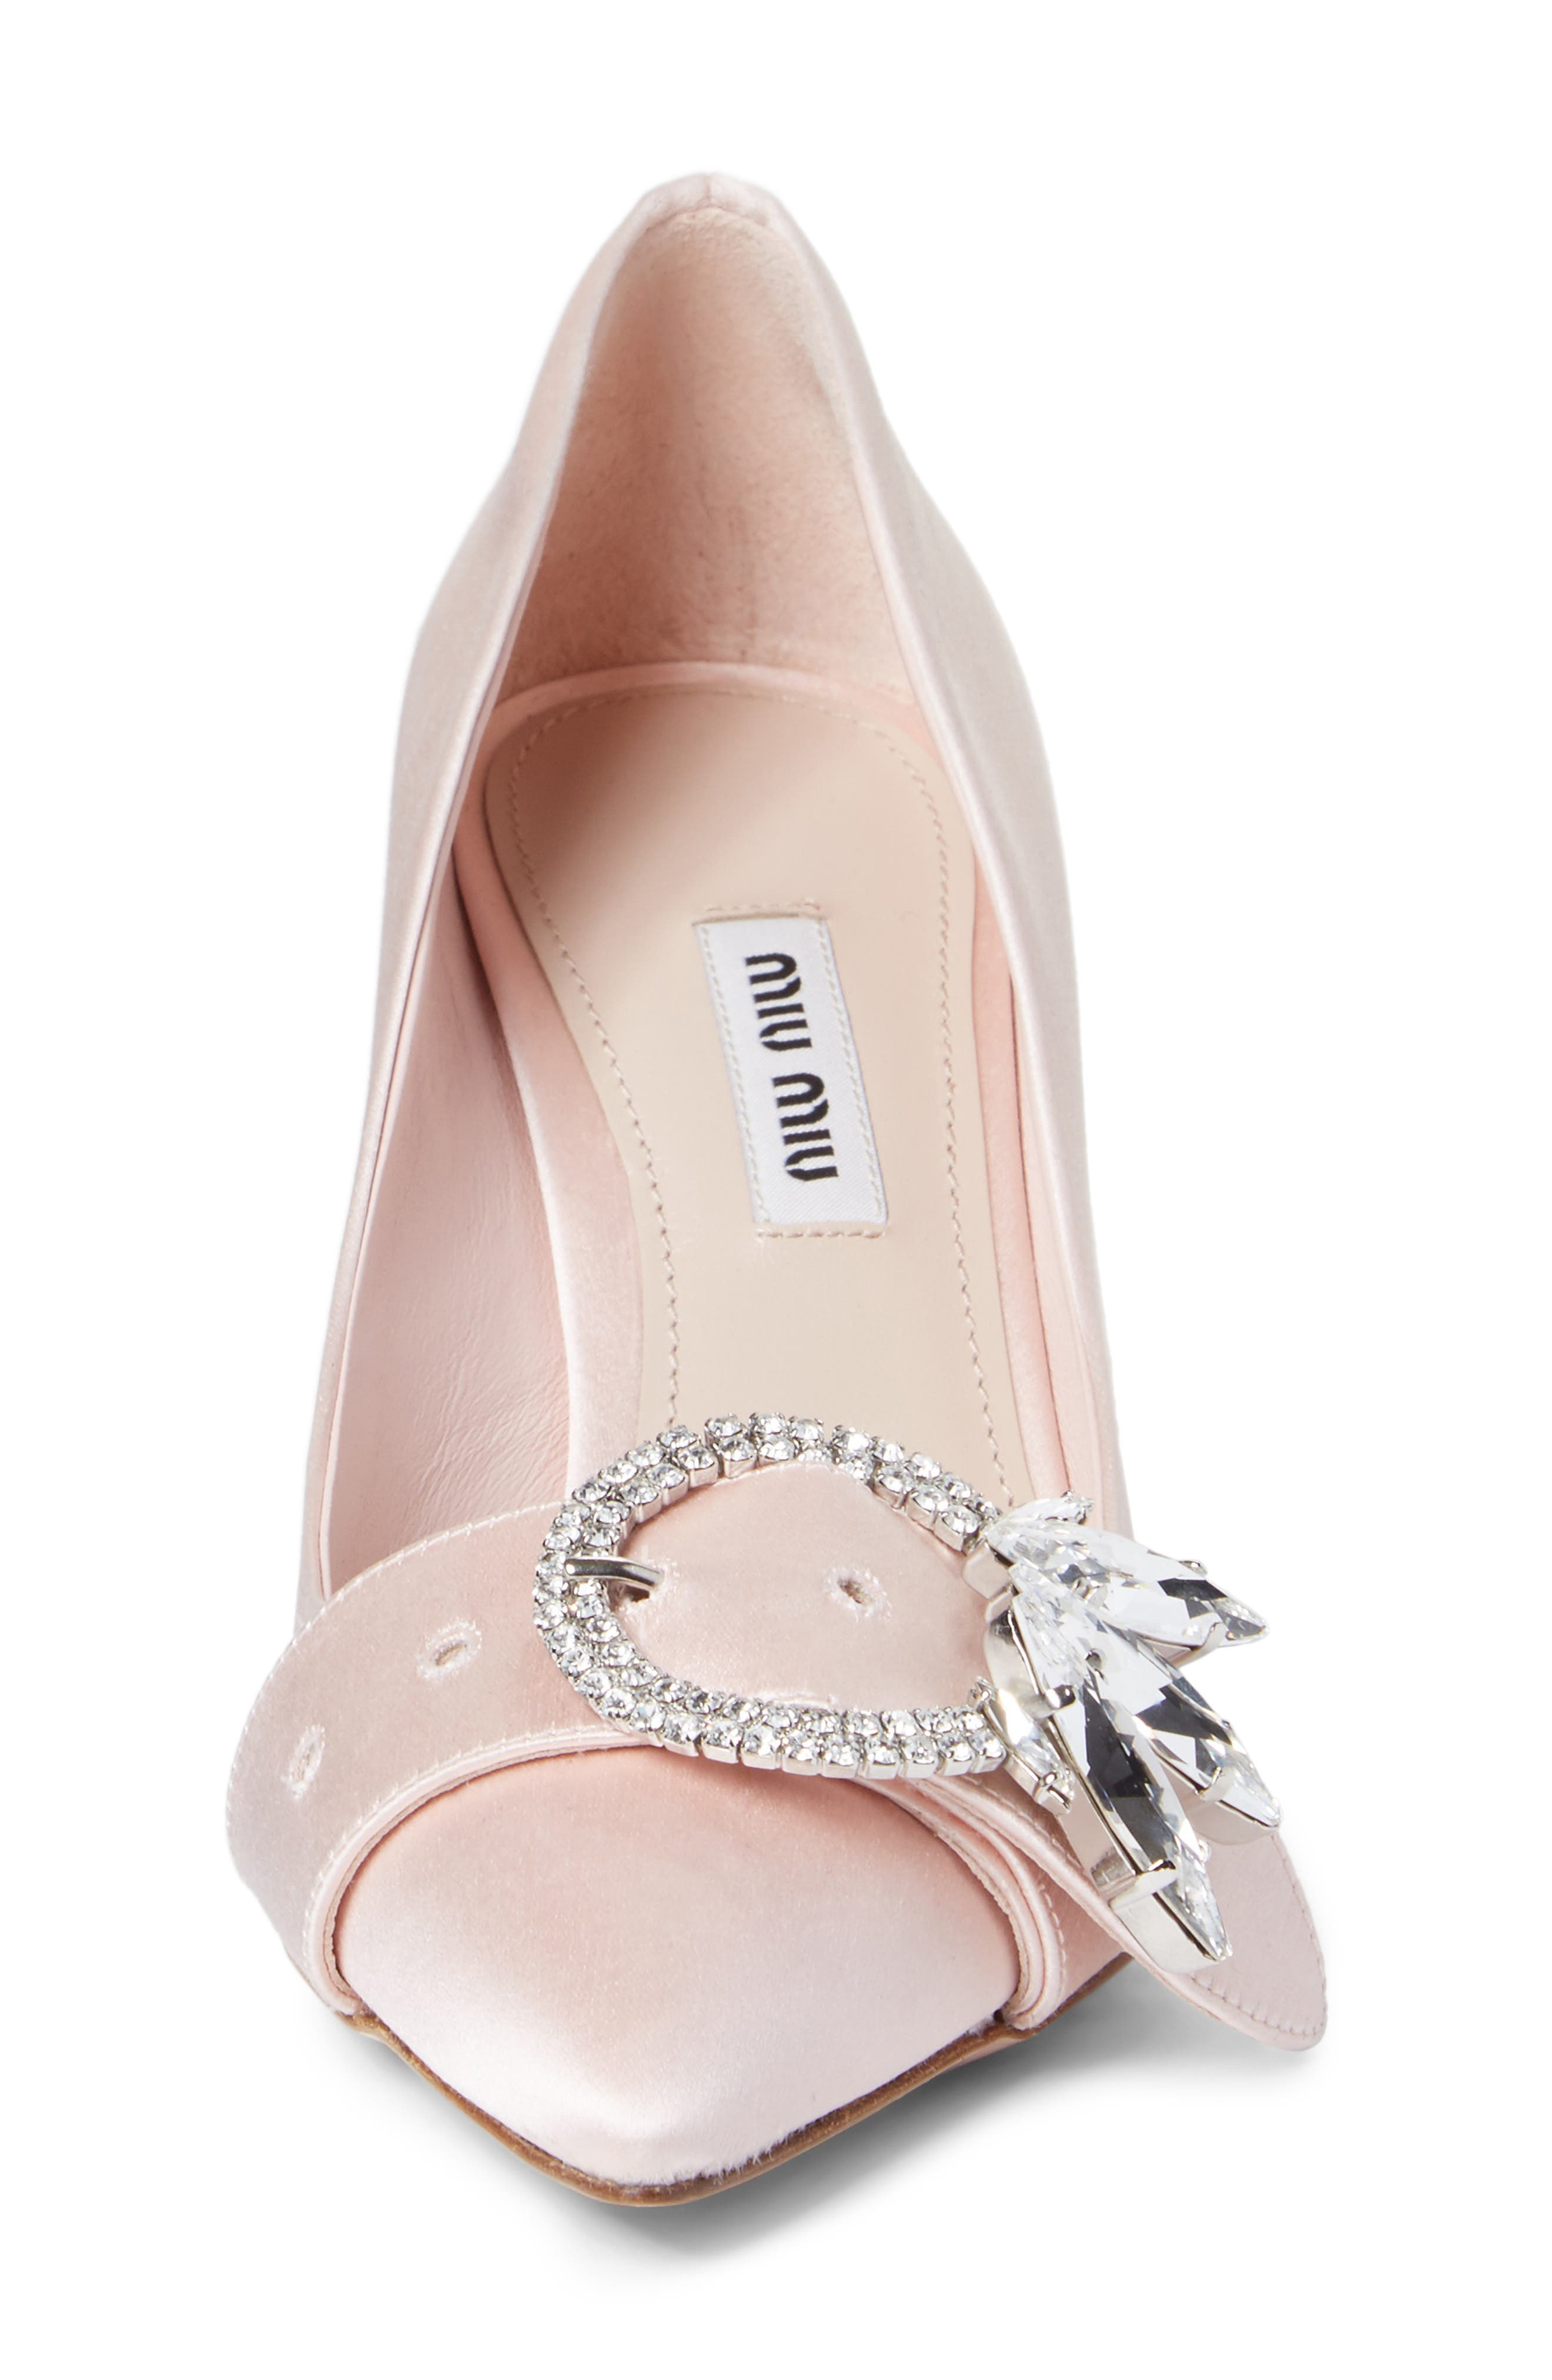 Crystal Buckle Pump,                             Alternate thumbnail 4, color,                             Pink Satin